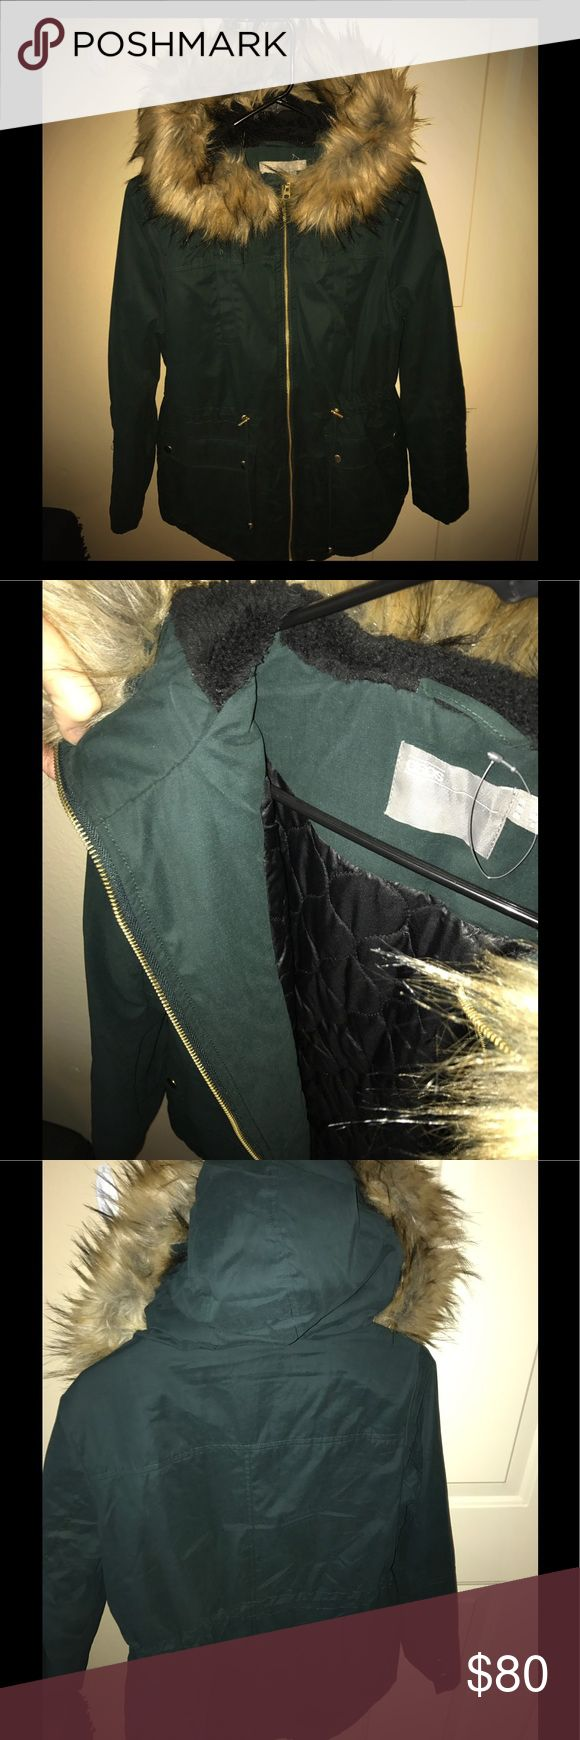 Winter coat/Jacket Warm green winter jacket with faux fur hood and gold zipper. I have worn it once, practically has the tags on. Super cute for the winter snow! Asos Jackets & Coats